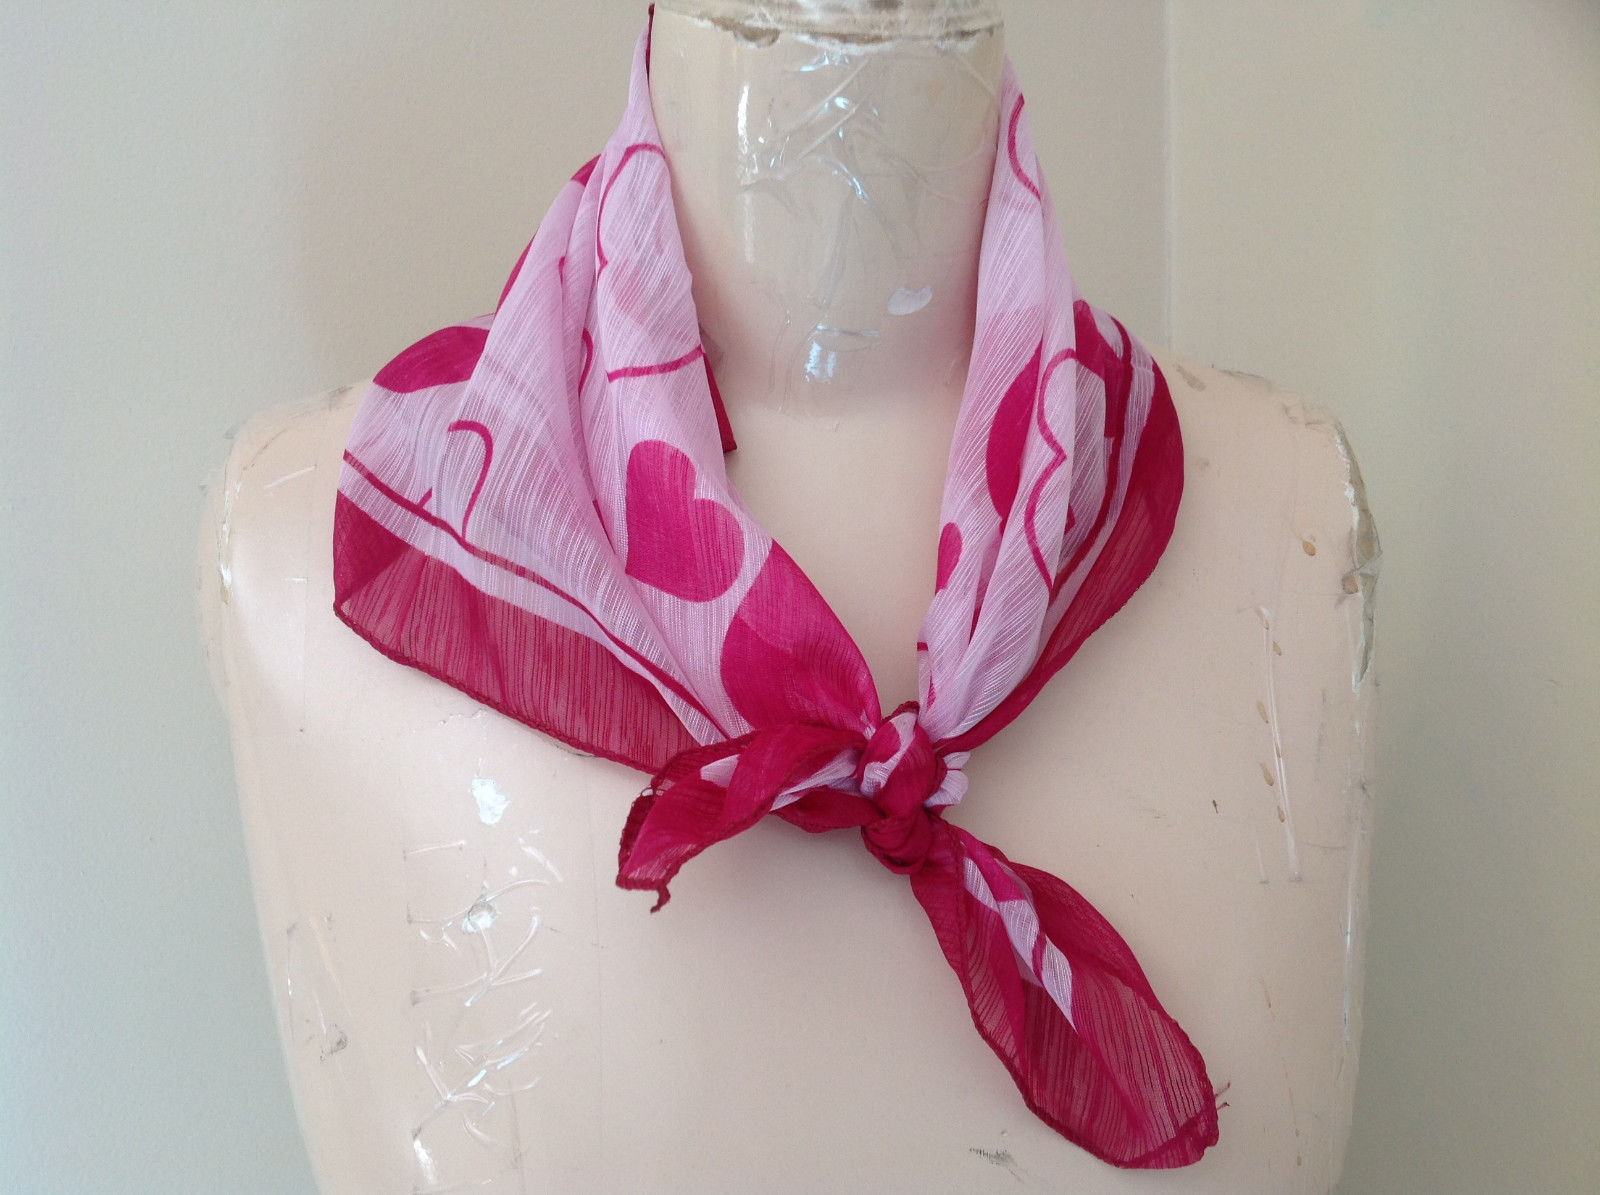 Pink Heart Design Square Fashion Scarf Lightweight Made in China